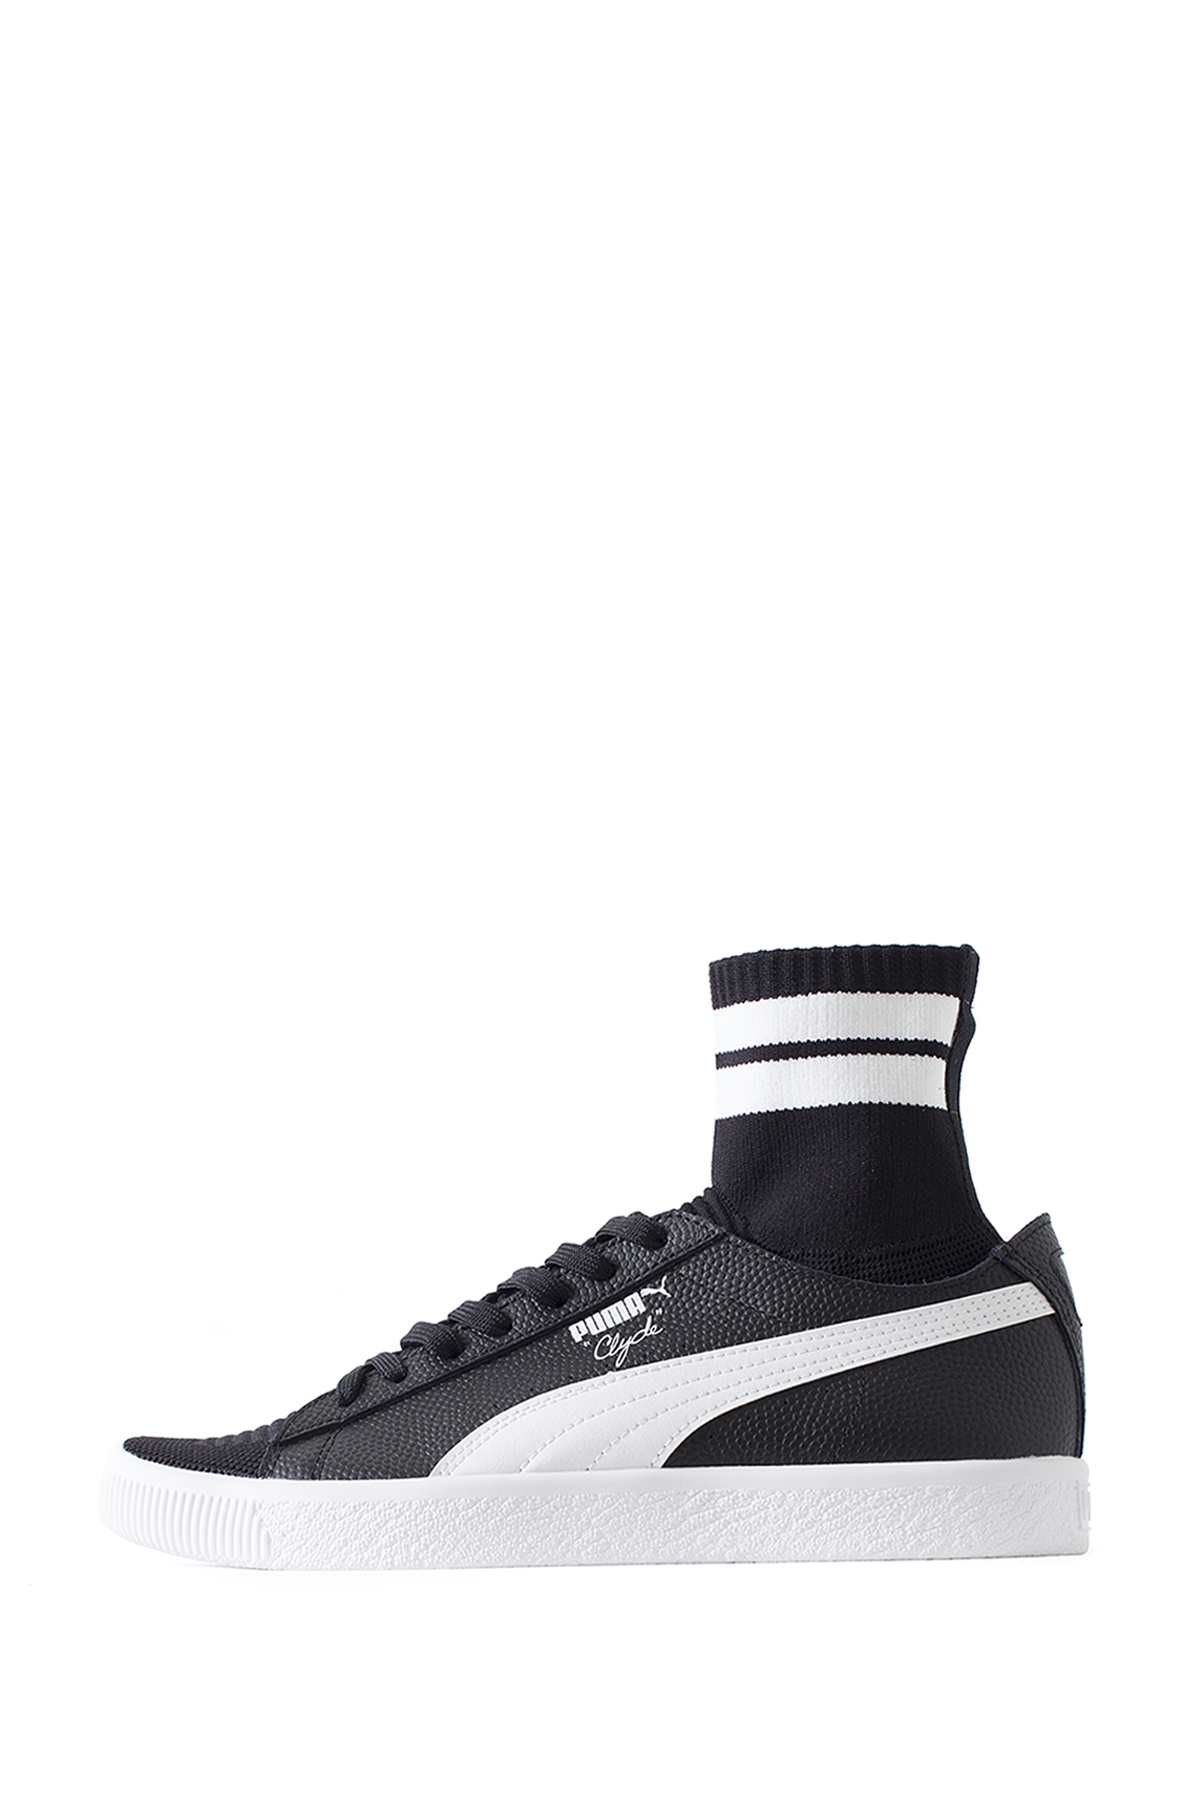 PUMA : Clyde Sock NYC (Black / White)